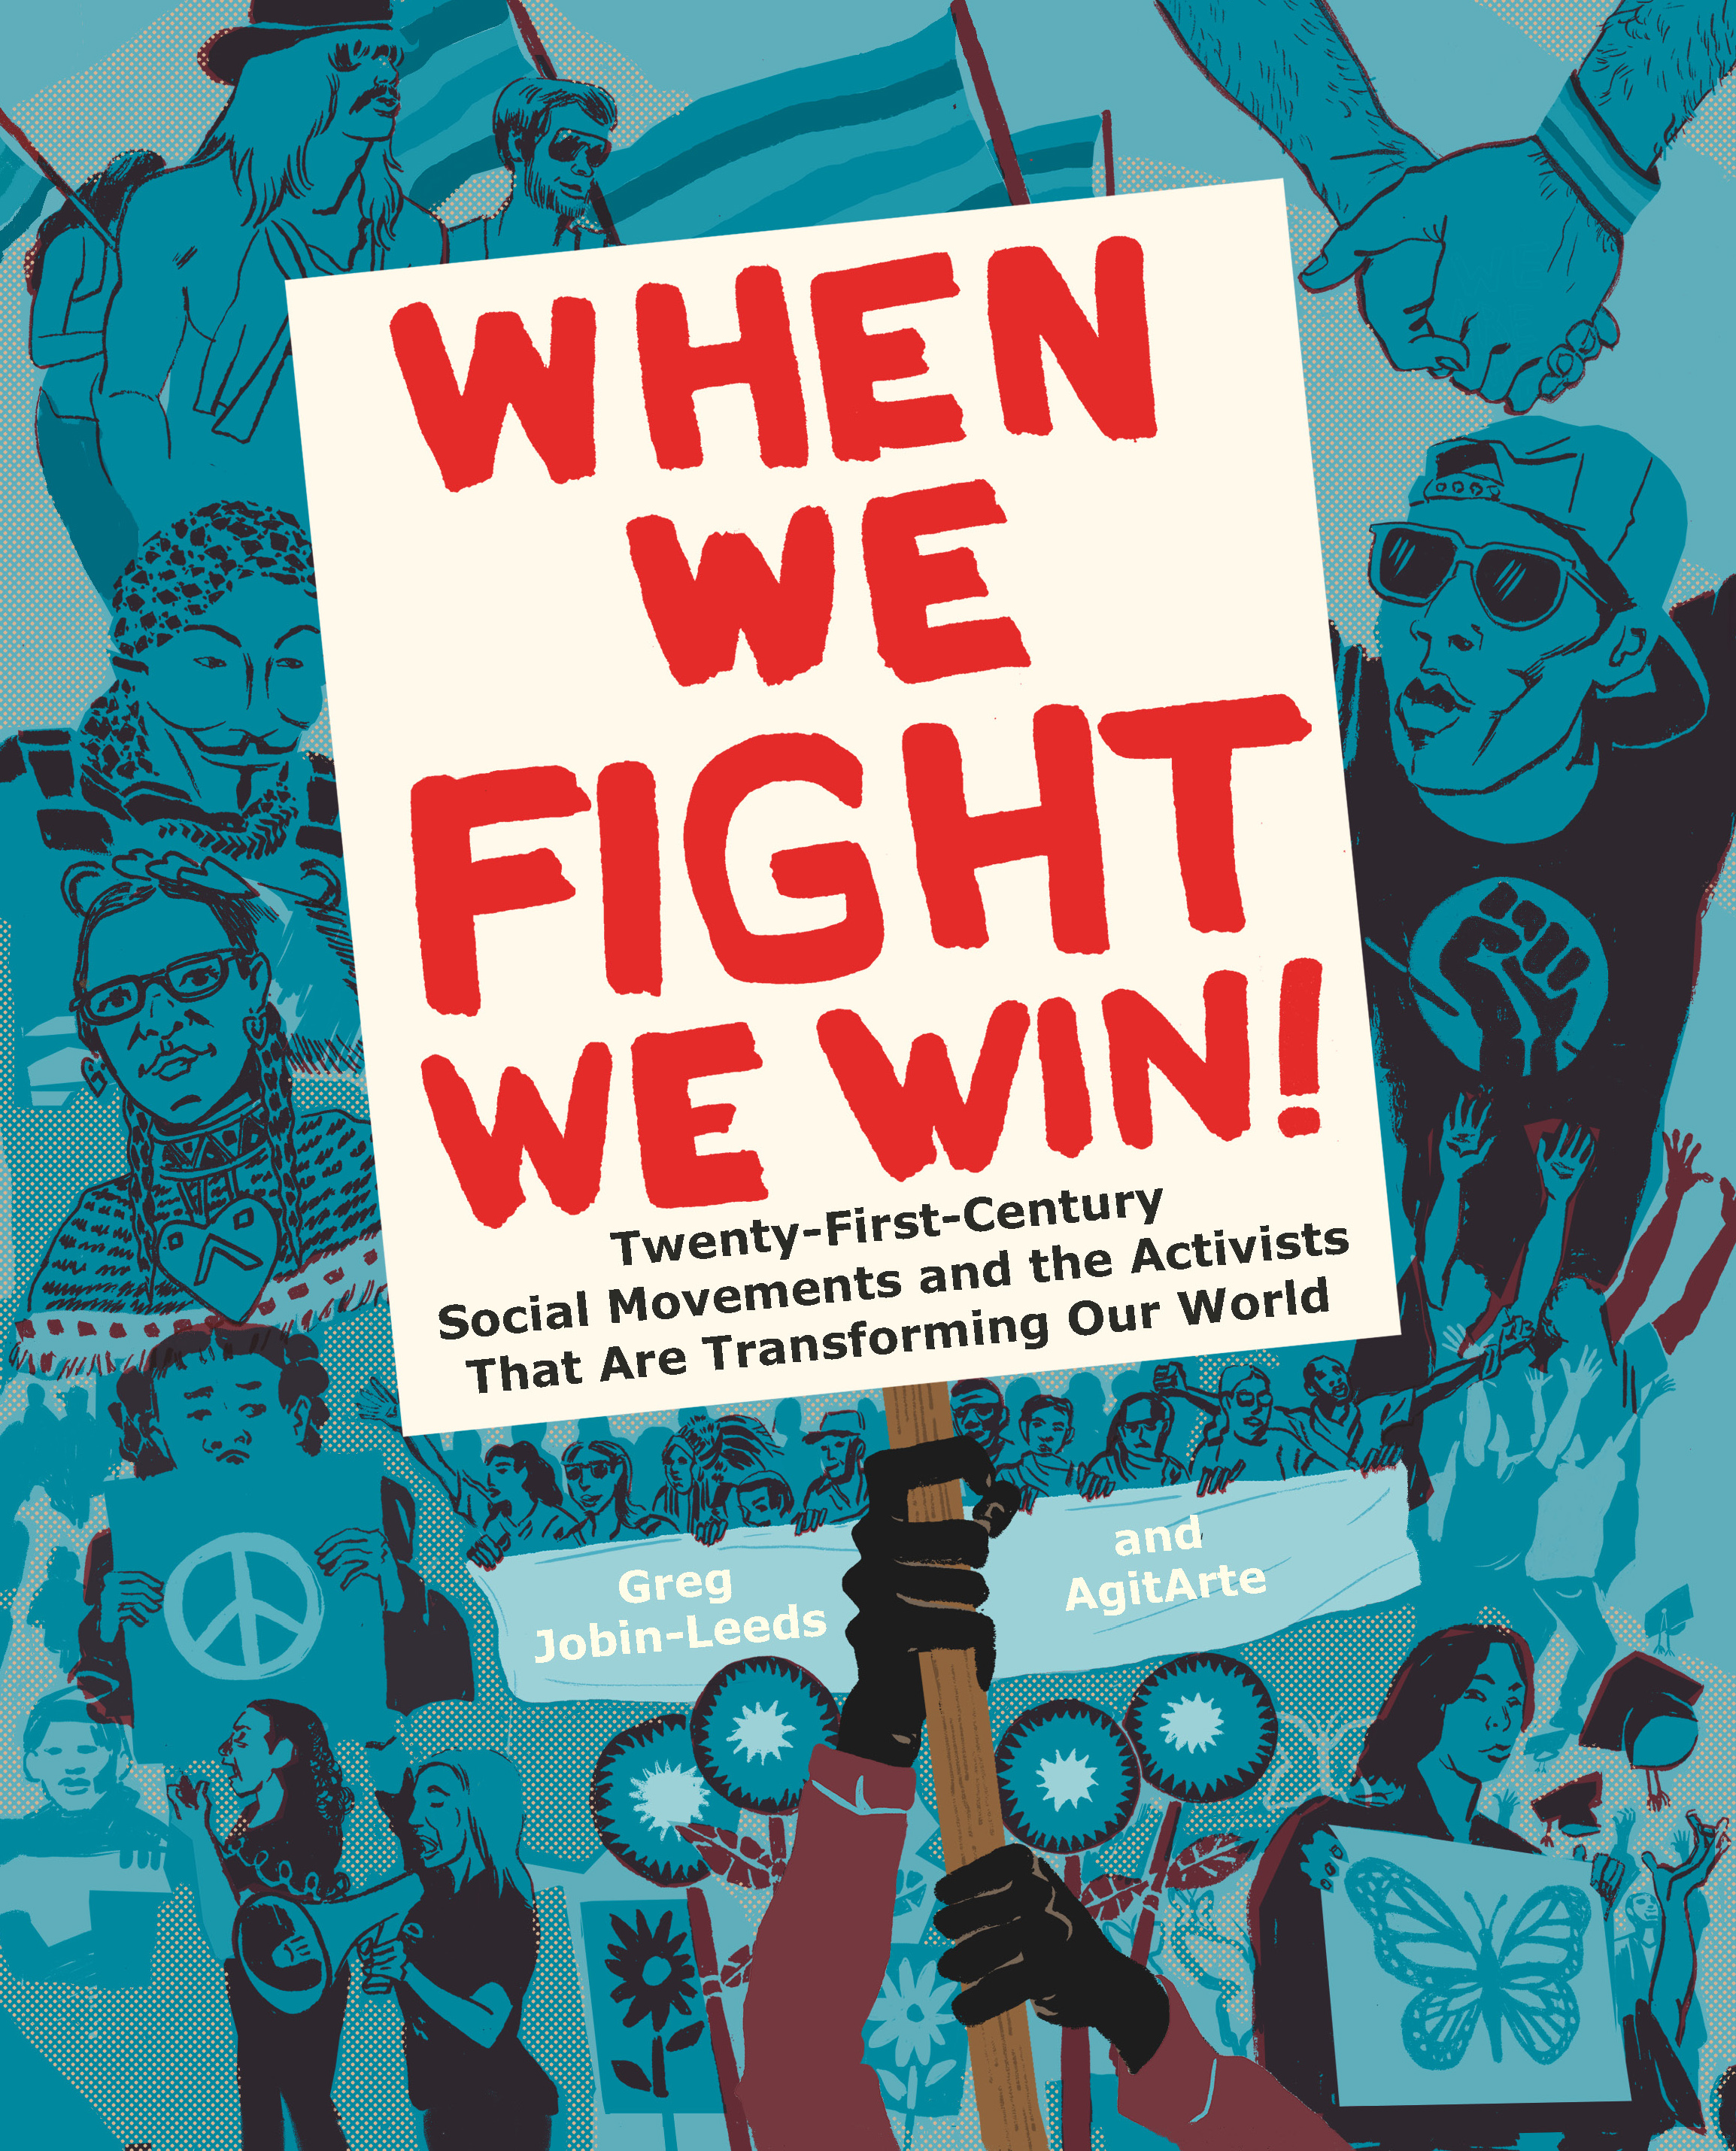 'When We Fight, We Win! Twenty-First-Century Social Movements and the Activists That Are Transforming Our World' Book Cover